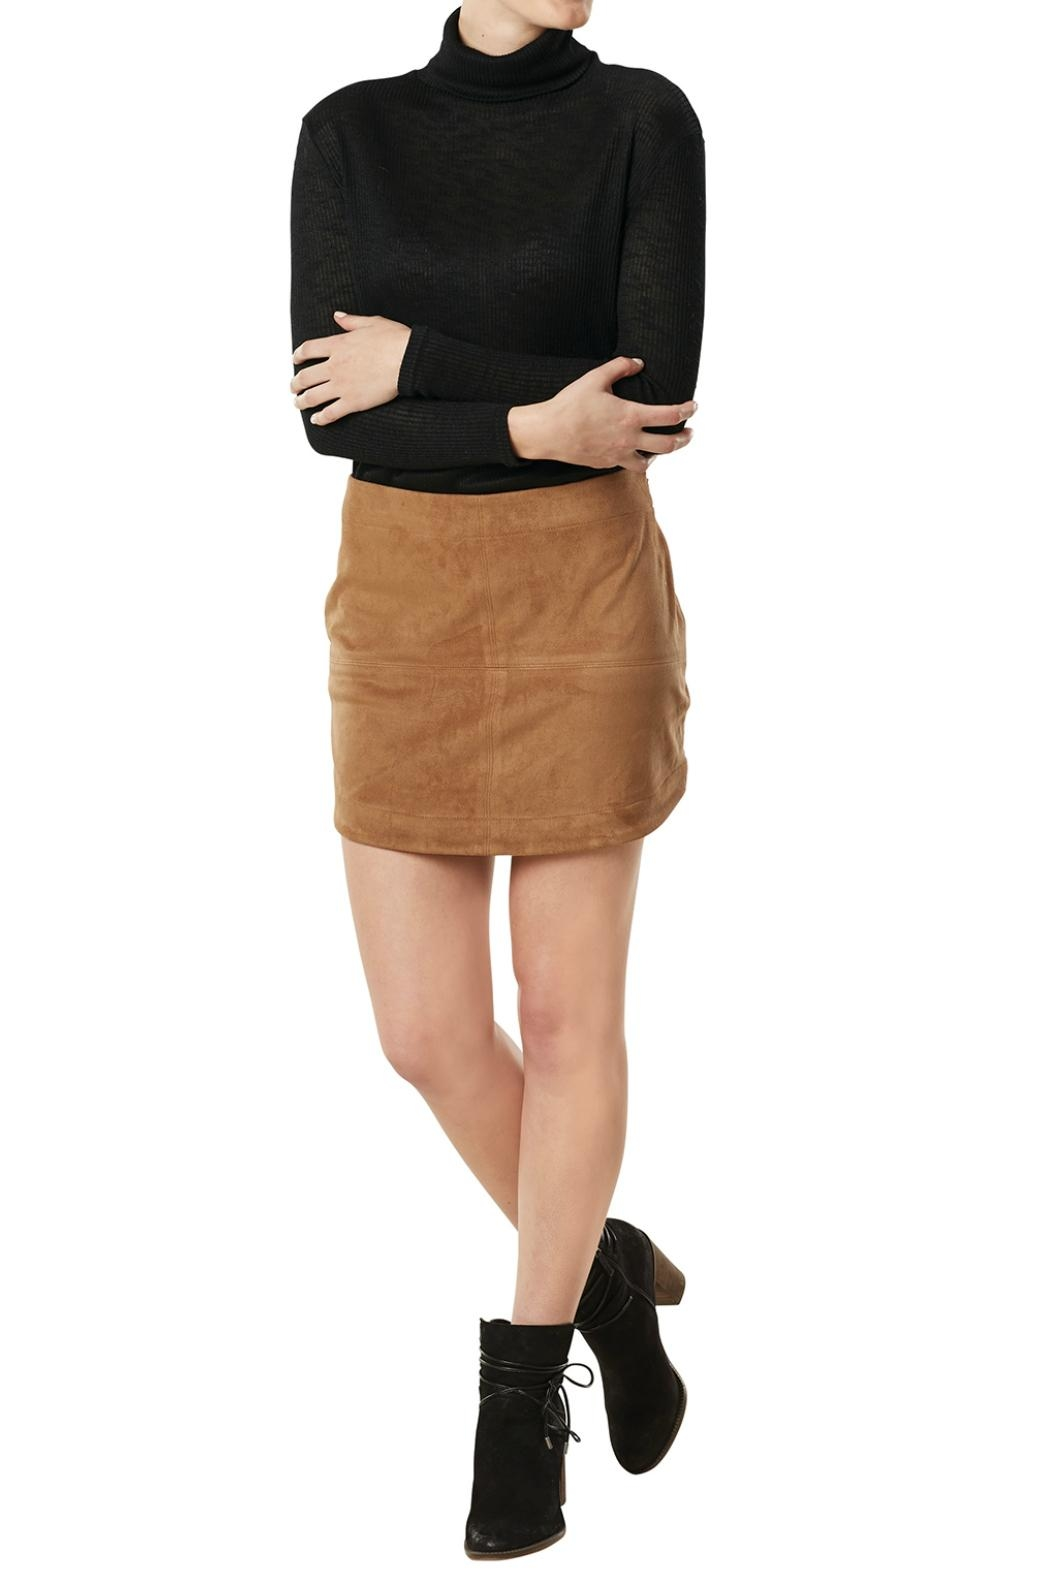 Mud Pie Camel Colored Suede Skirt - Main Image